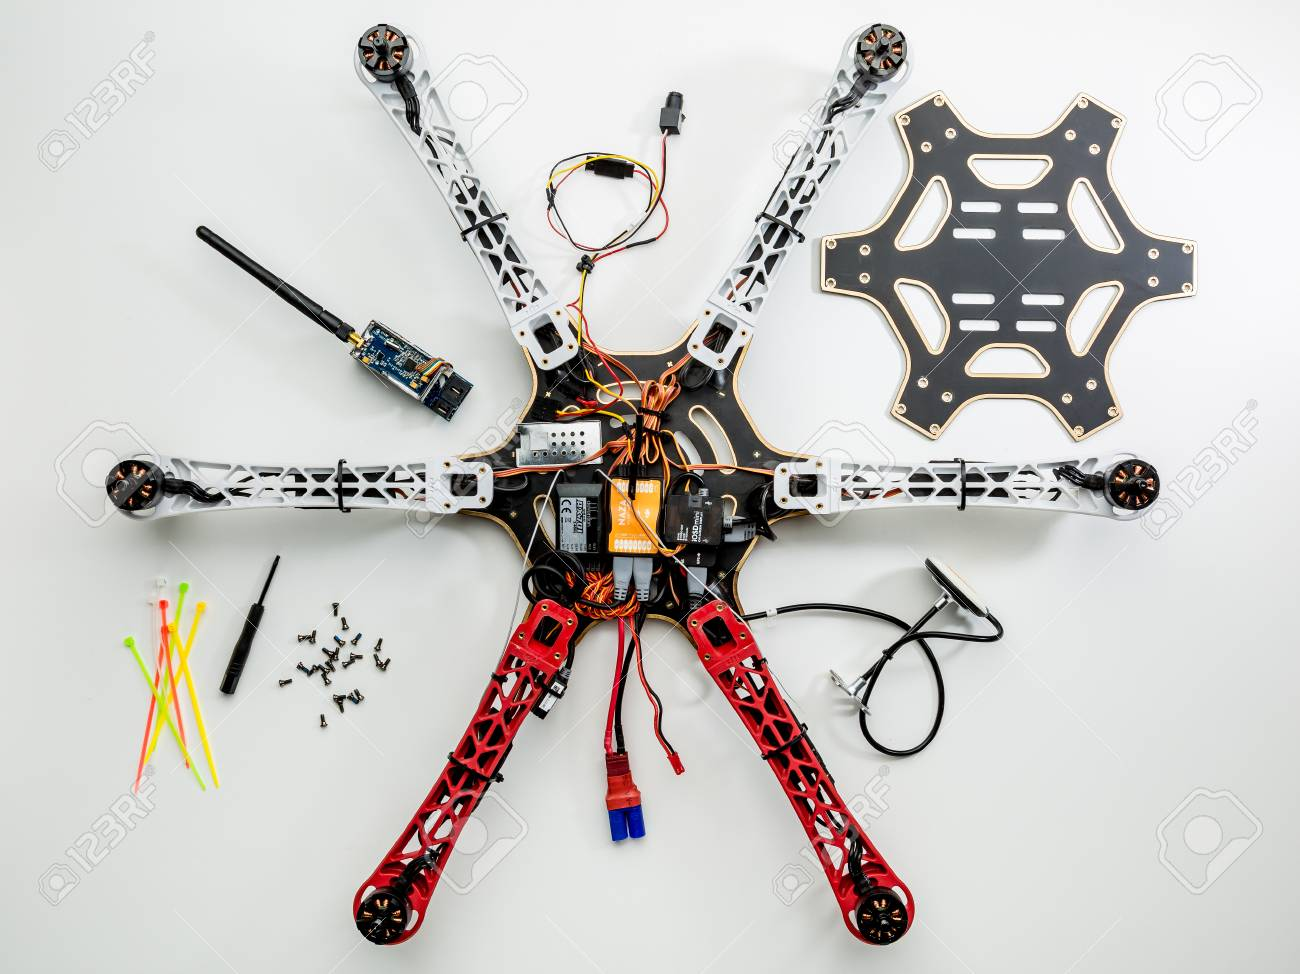 FORT COLLINS, CO, USA, JULY 20, 2015: Assembling a hexacopter